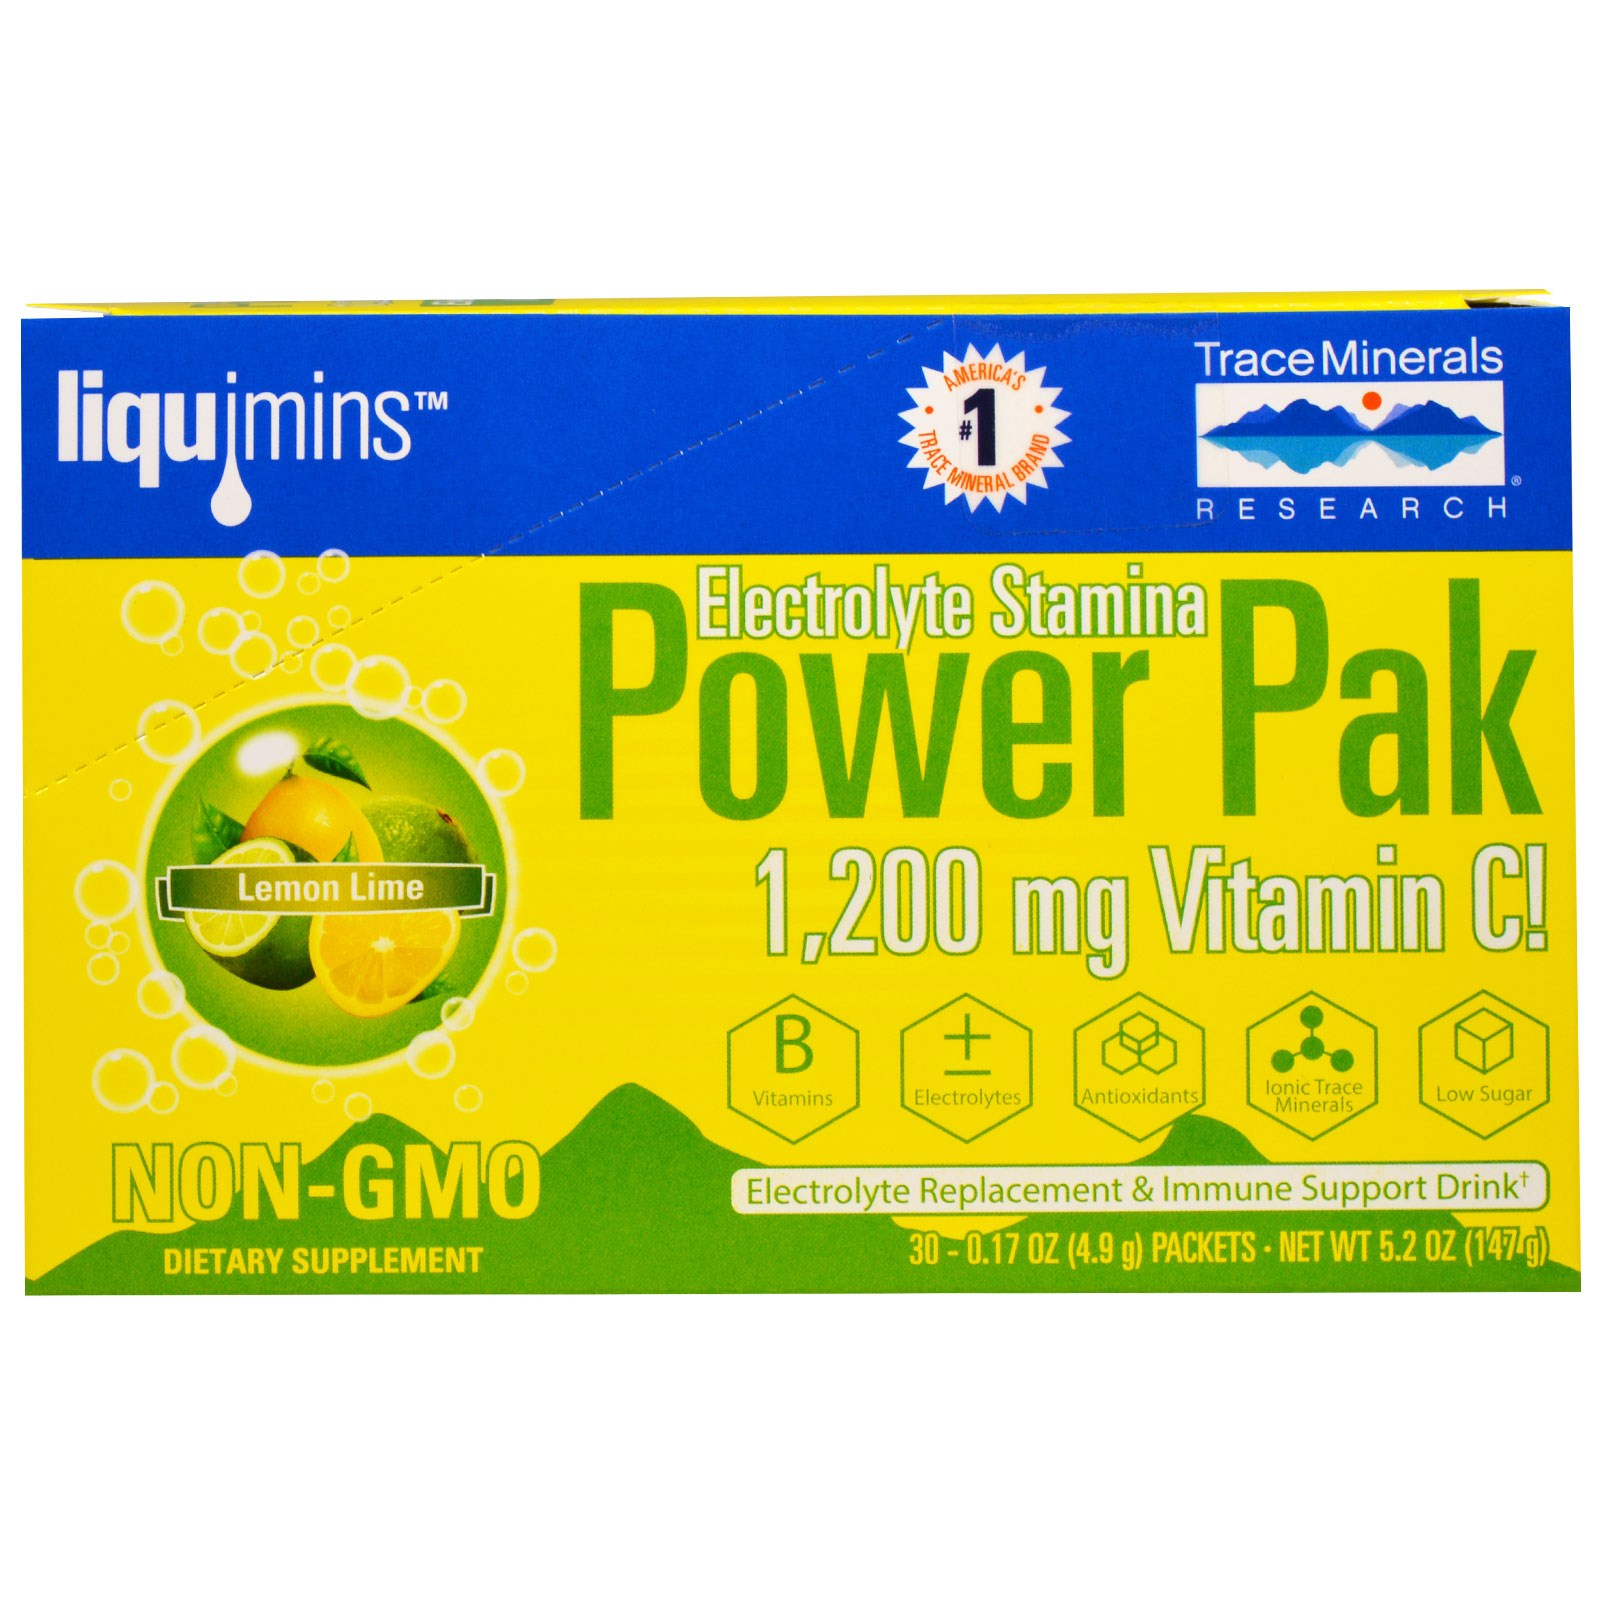 Electrolyte Stamina, Power Pak, Lemon Lime (30 Packets, 4.9 g Each) Trace Minerals Research